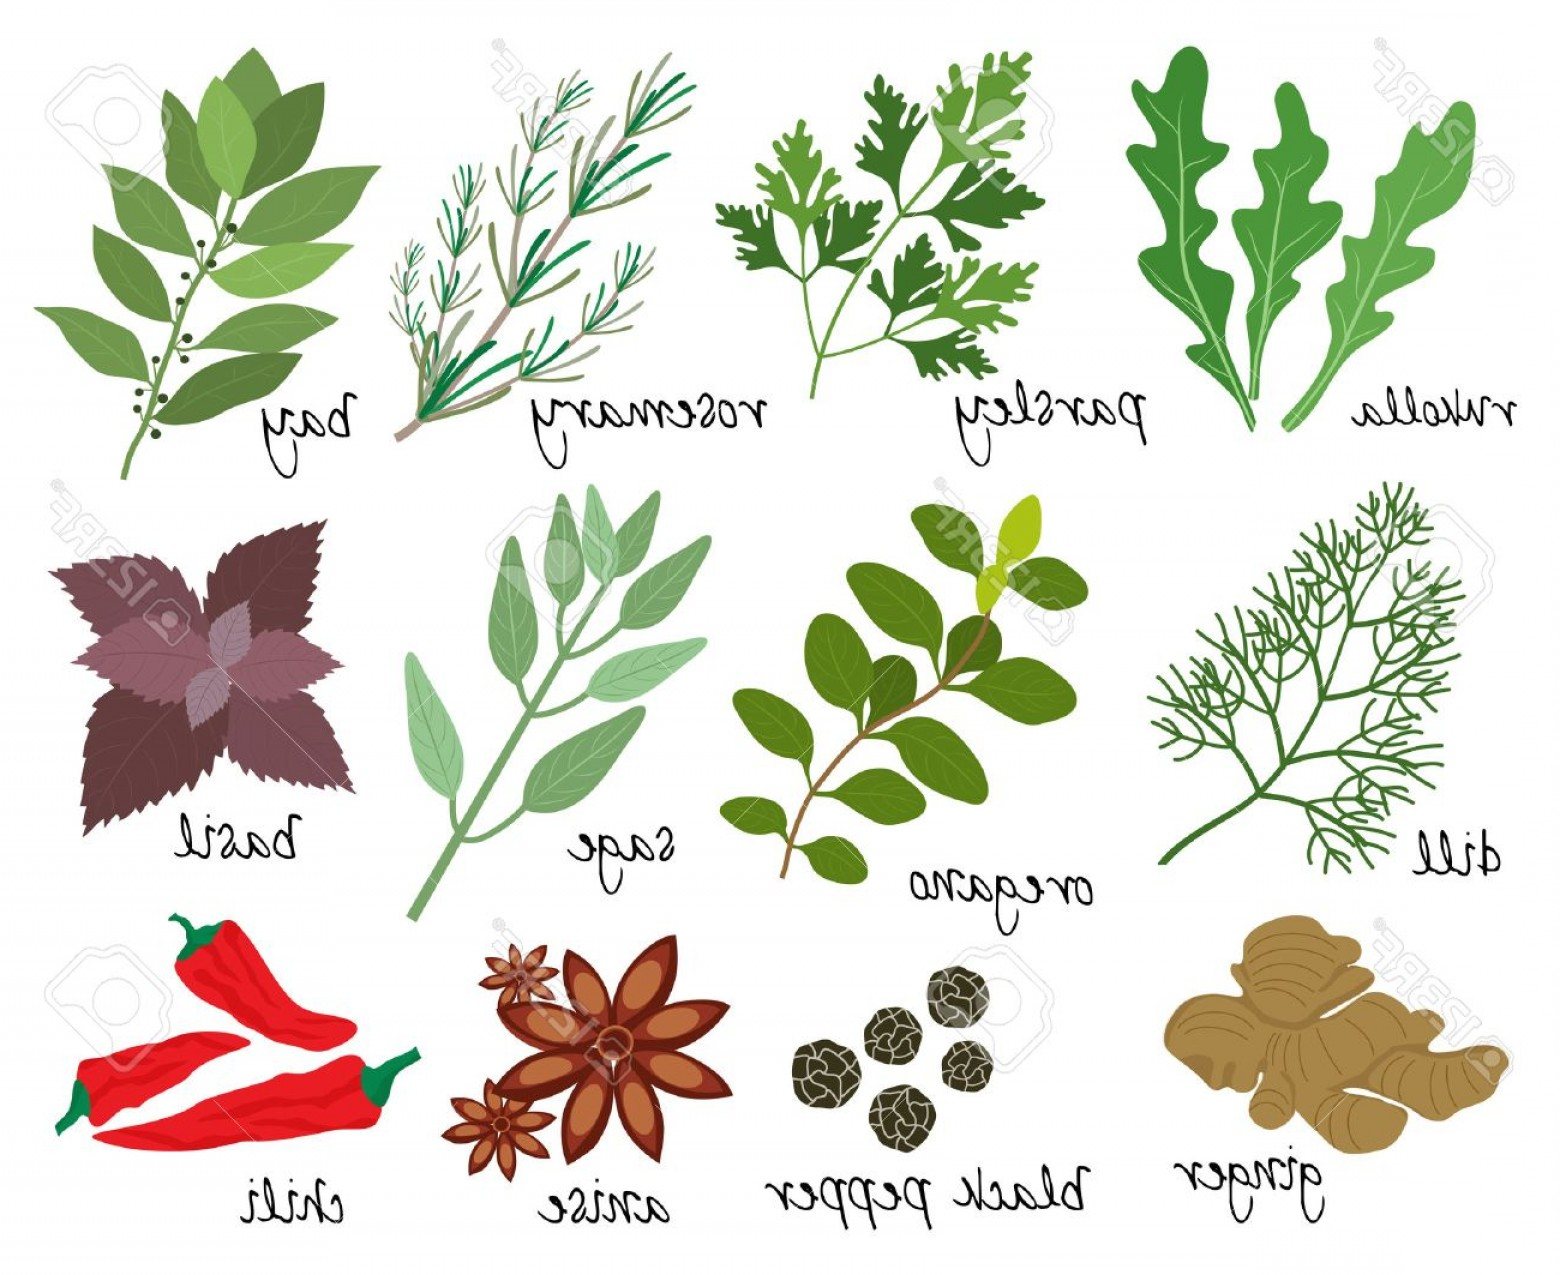 Sage Plant Vector: Photostock Vector Set Of Vector Illustrations Of Herbs And Spices With Sprigs Of Fresh Rosemary Rocket Parsley Bay Lea